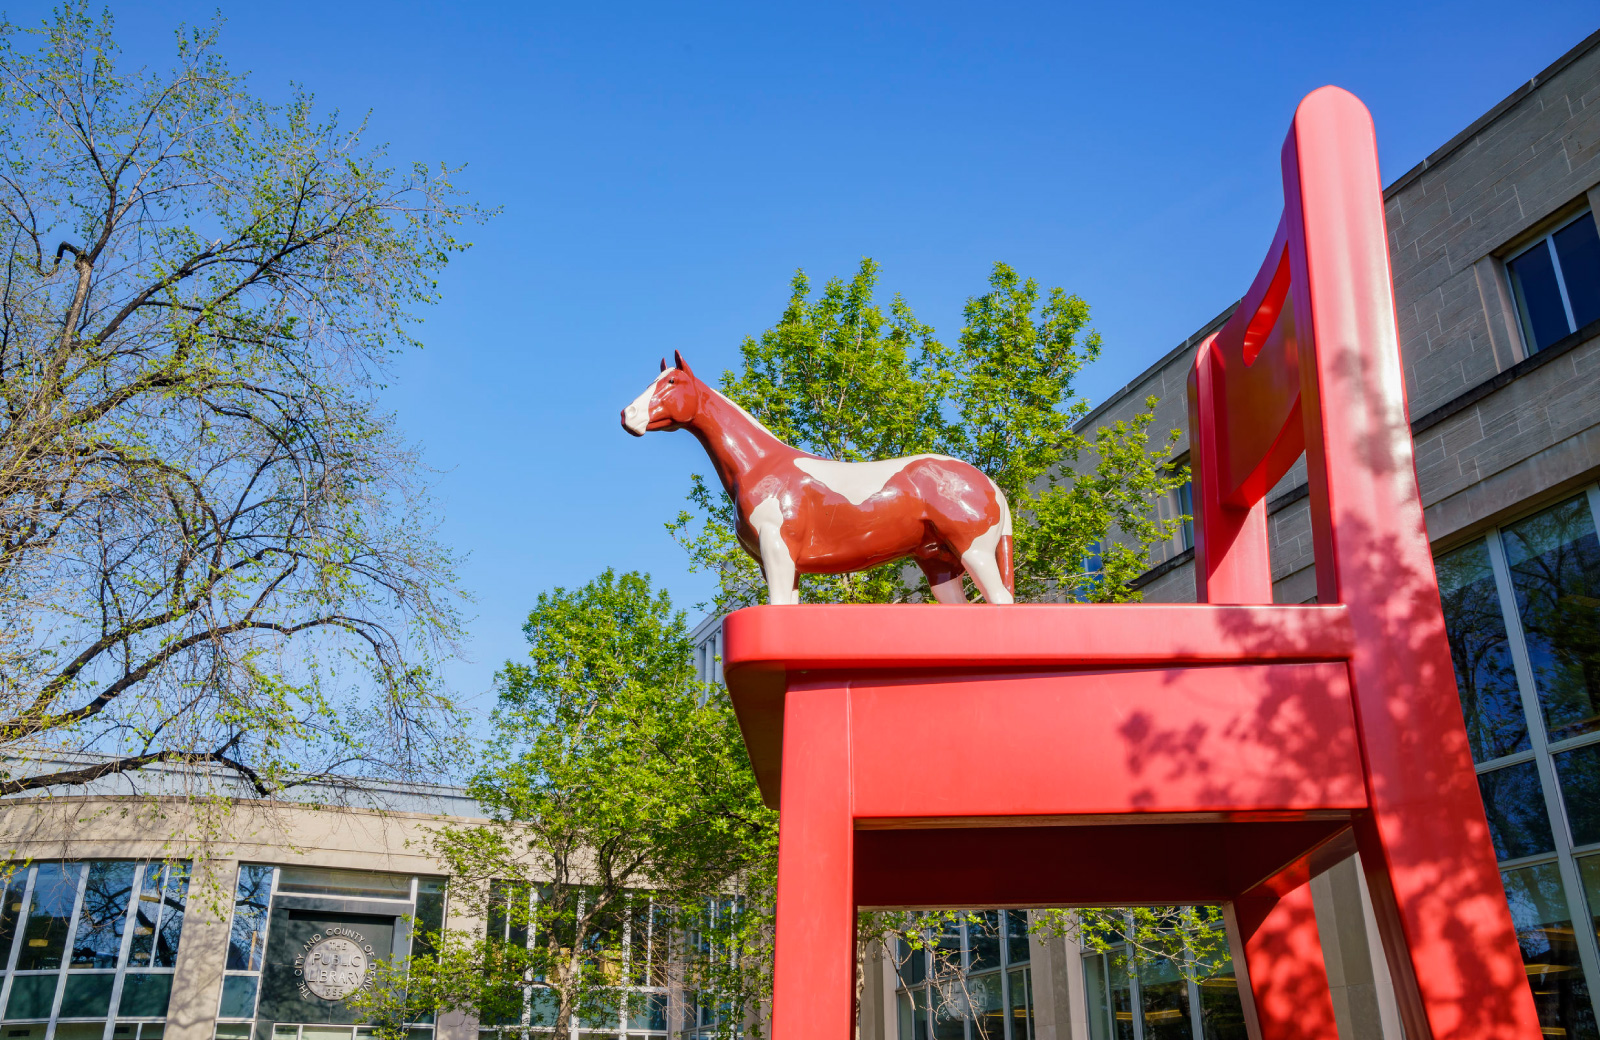 big red chair with horse colab